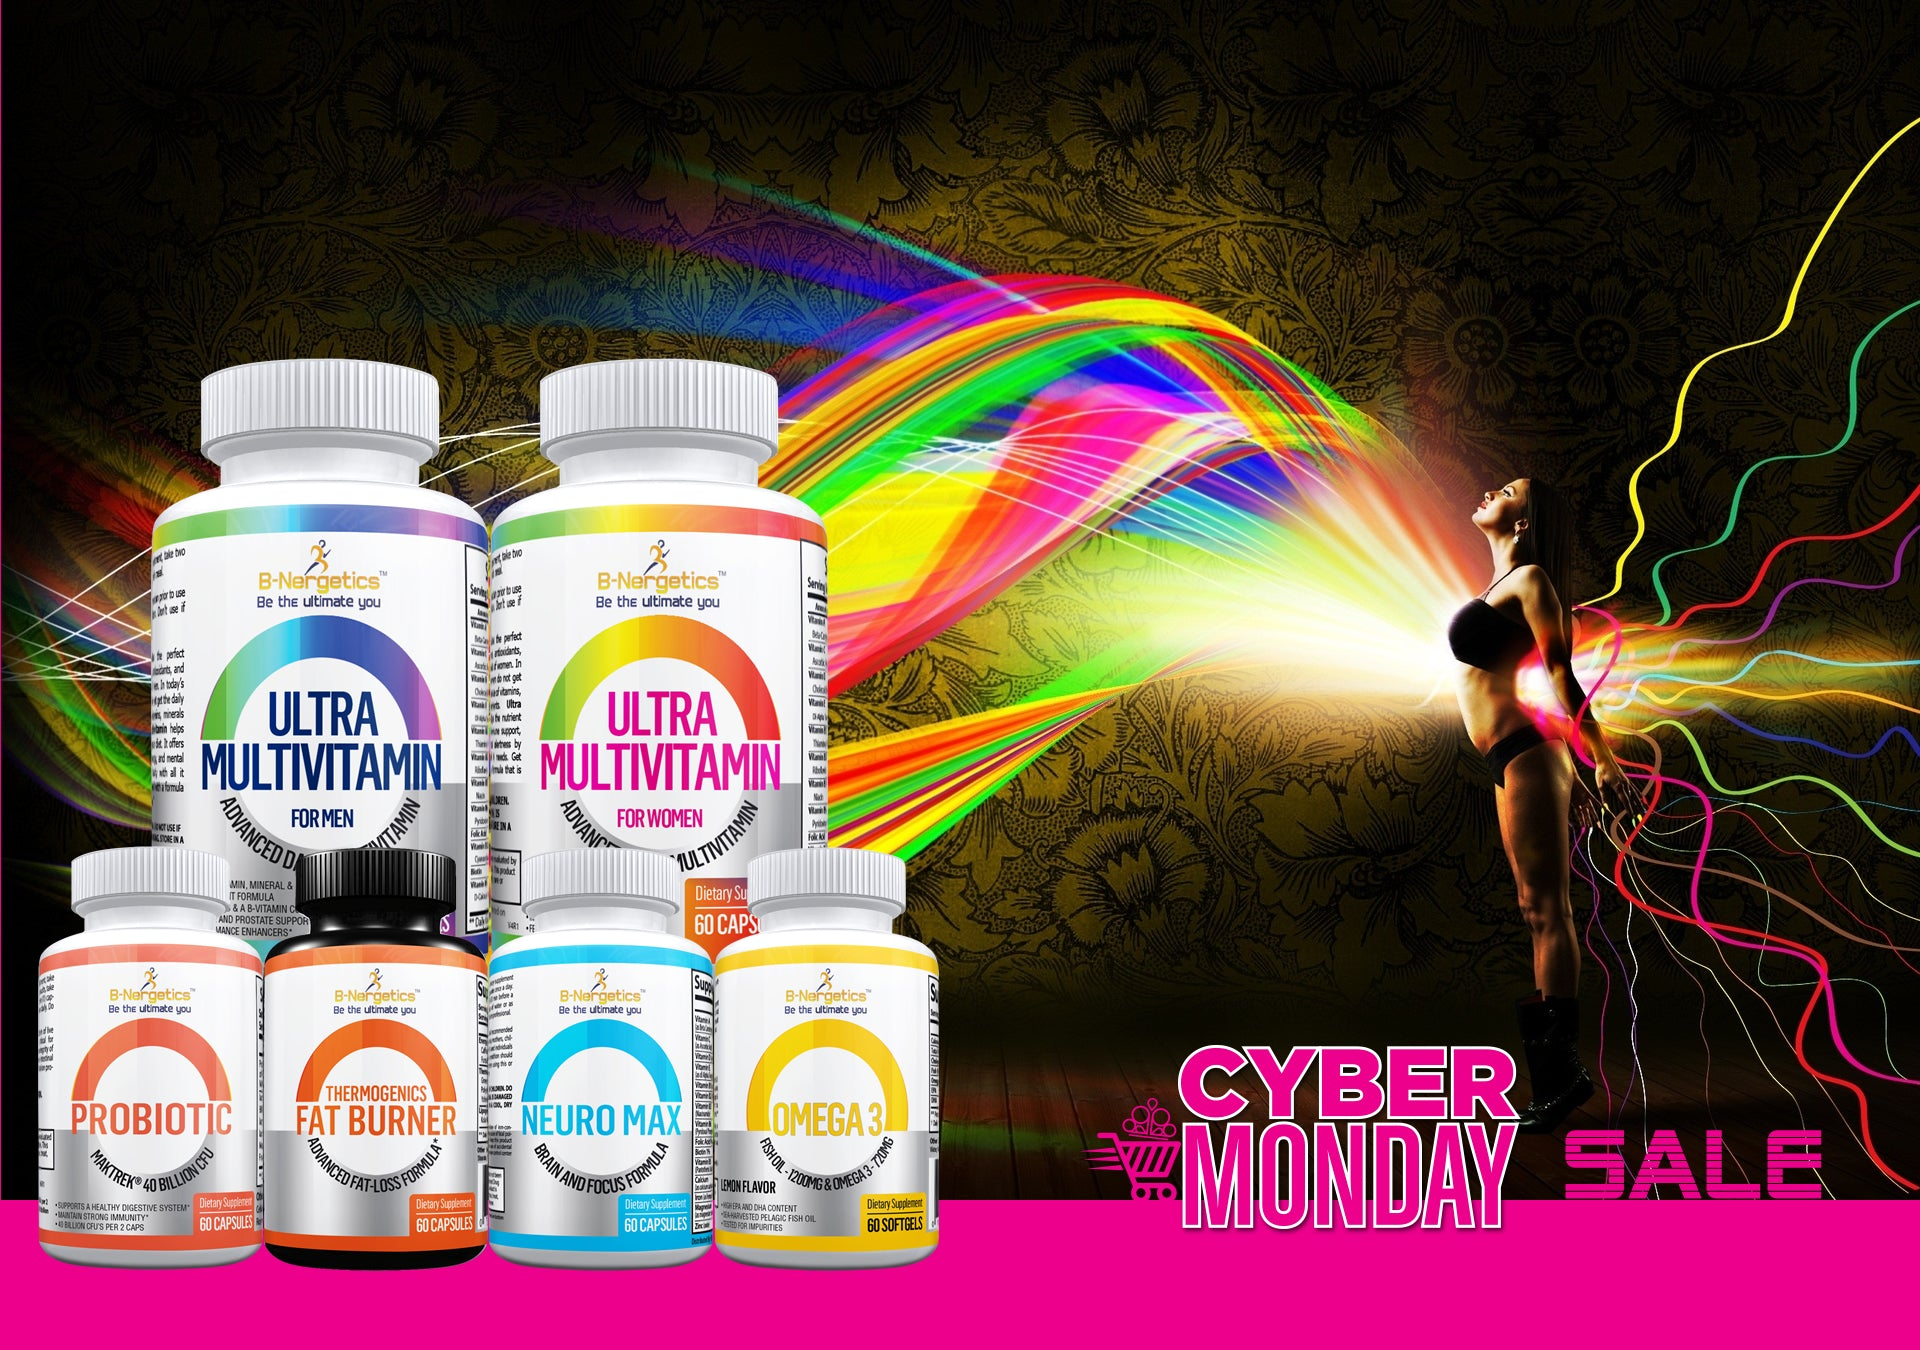 Sale Continues with Cyber Monday Vitamin Discounts